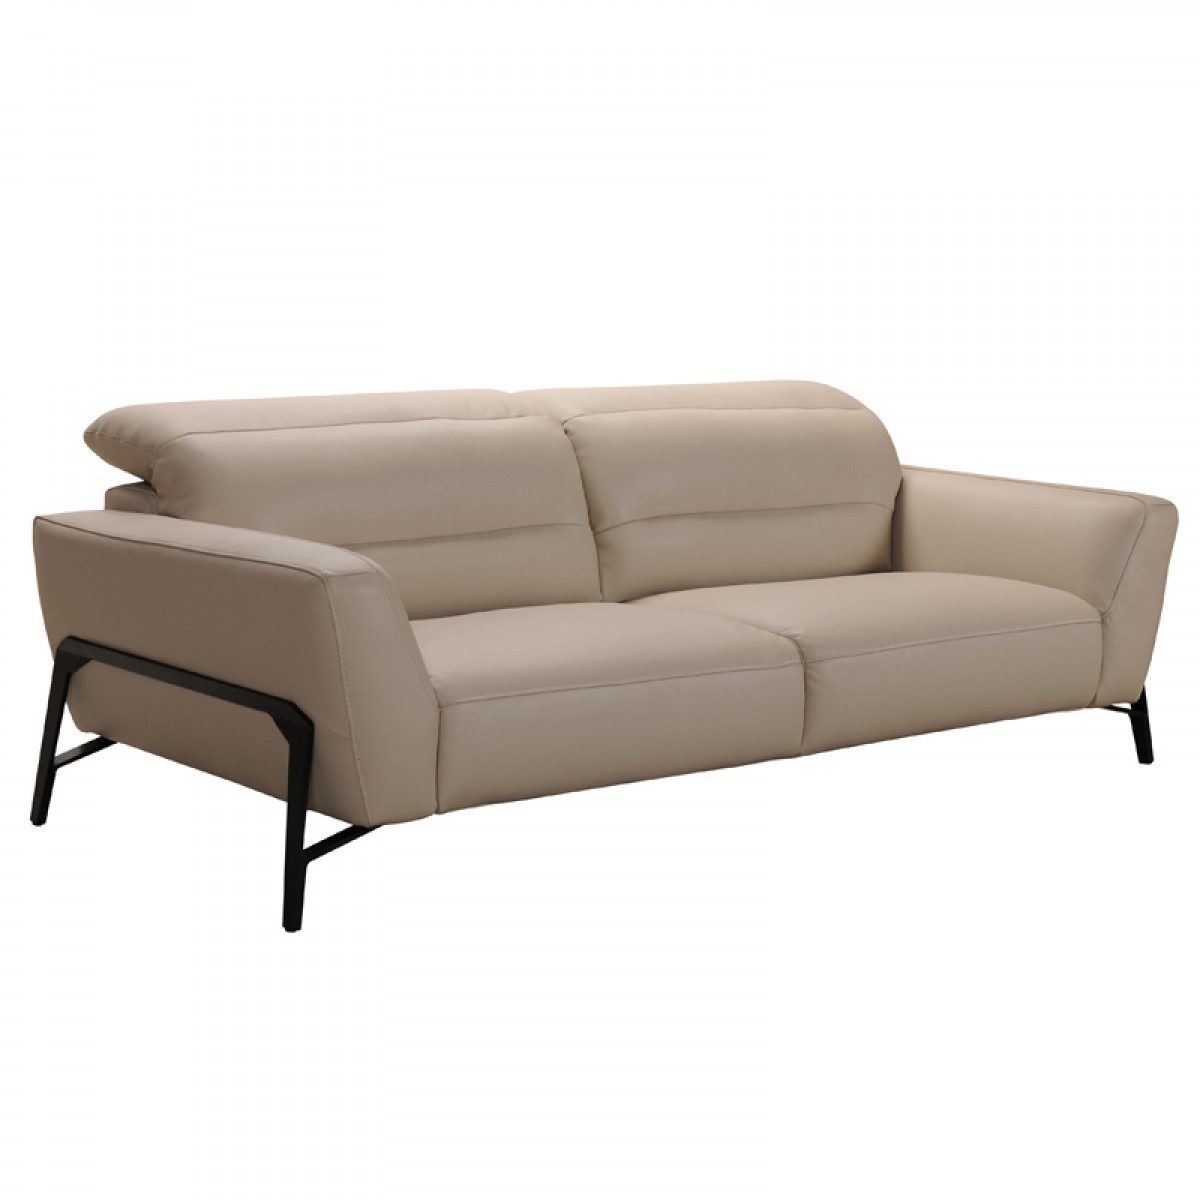 Sofa Taupe Divani Casa Evora Modern Taupe Leather Sofa And Chair Set